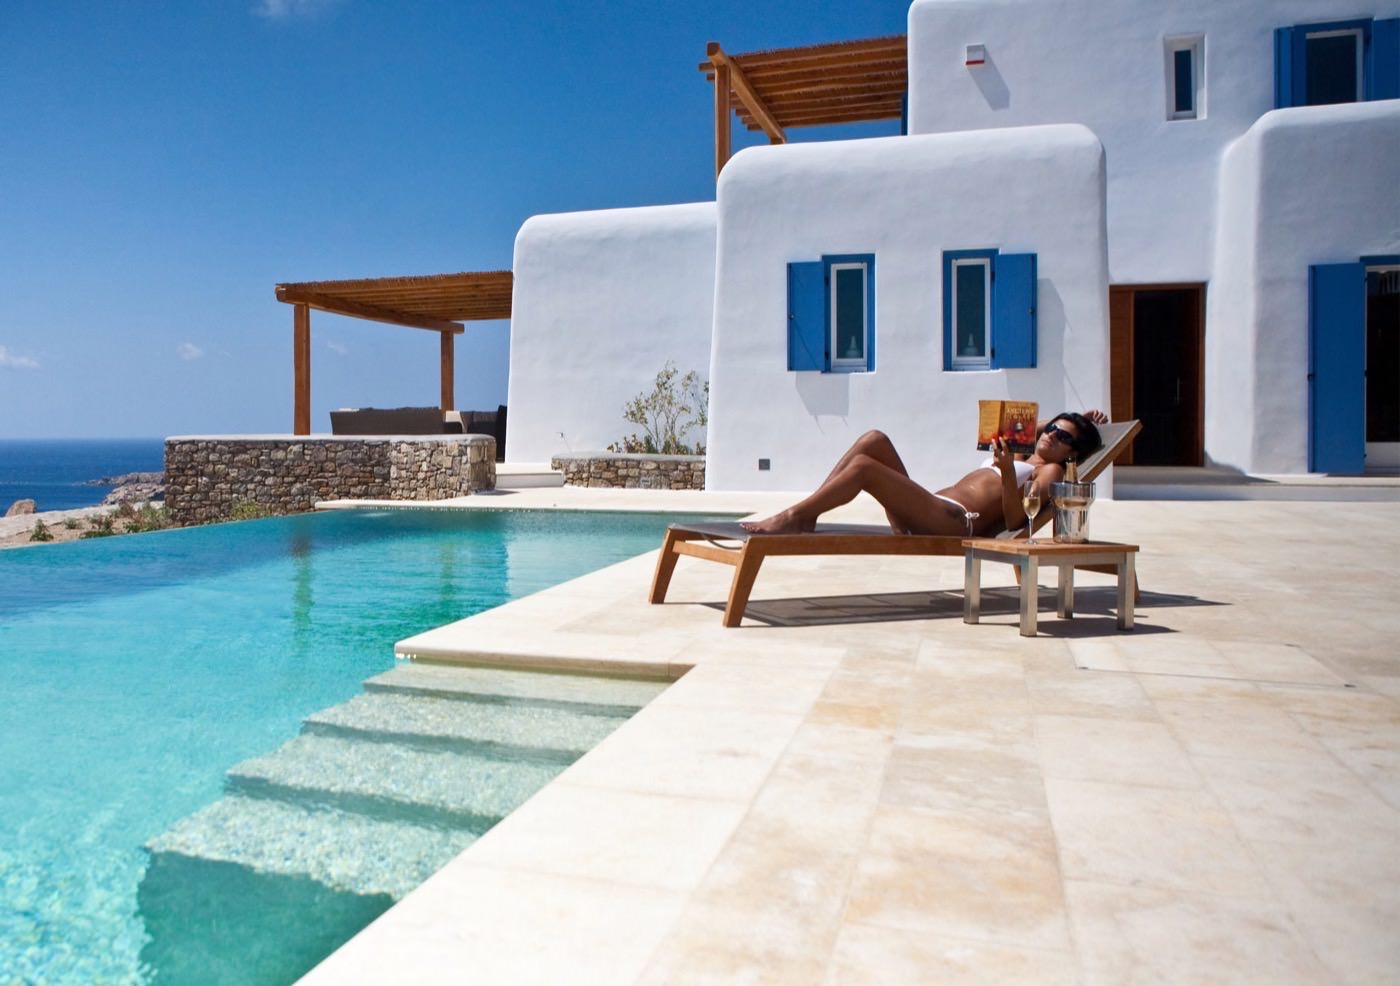 luxury hotel of Karma Pelikanos Poolside area